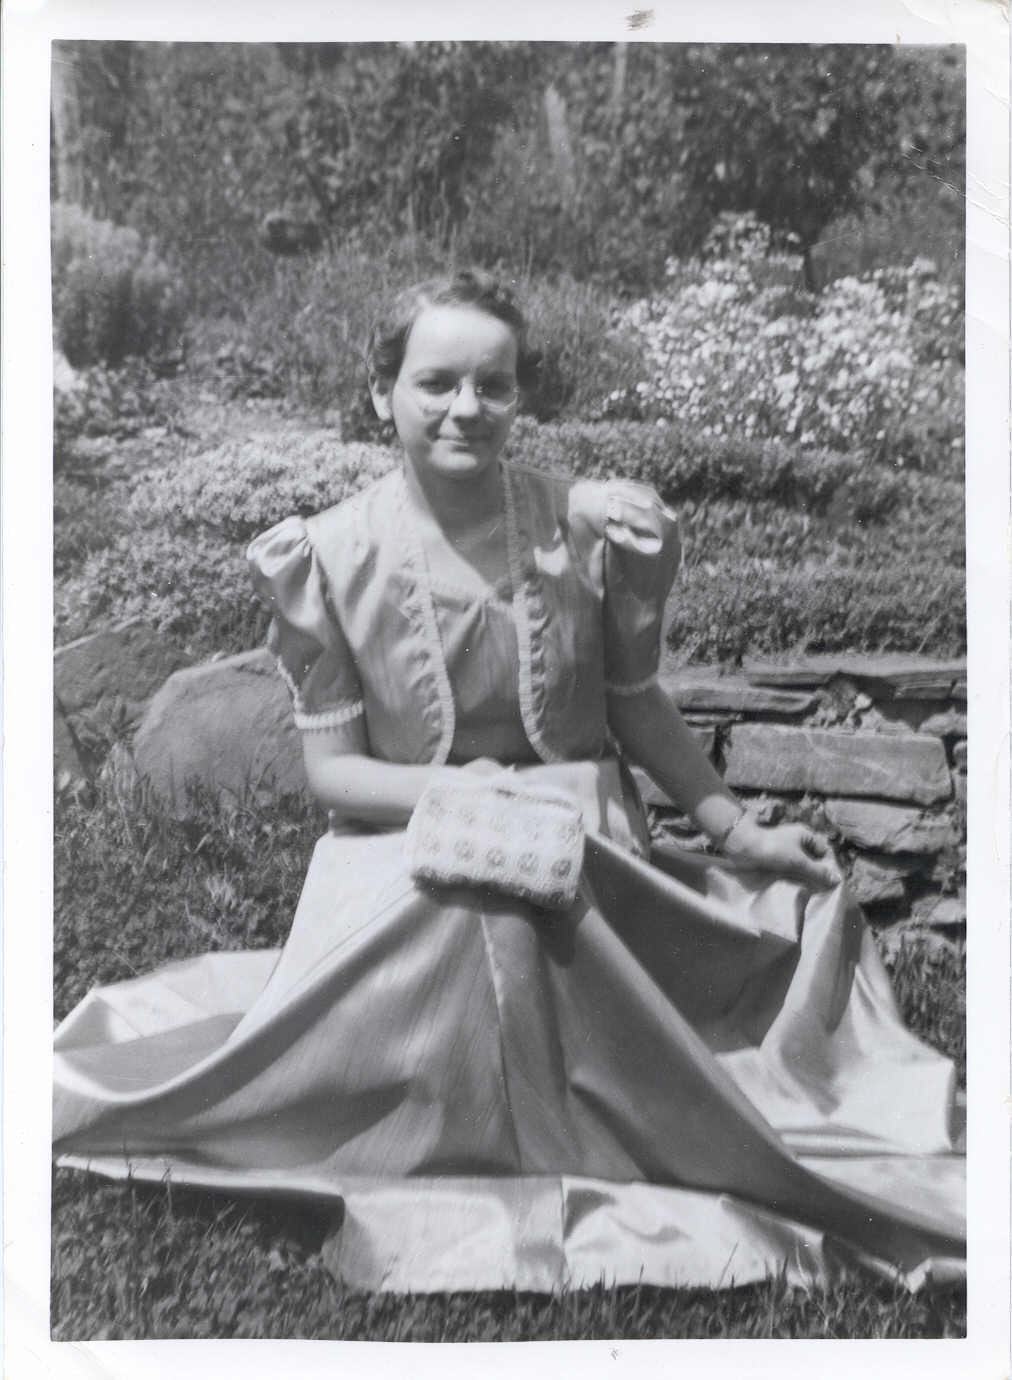 My maternal grandmother in her youth.